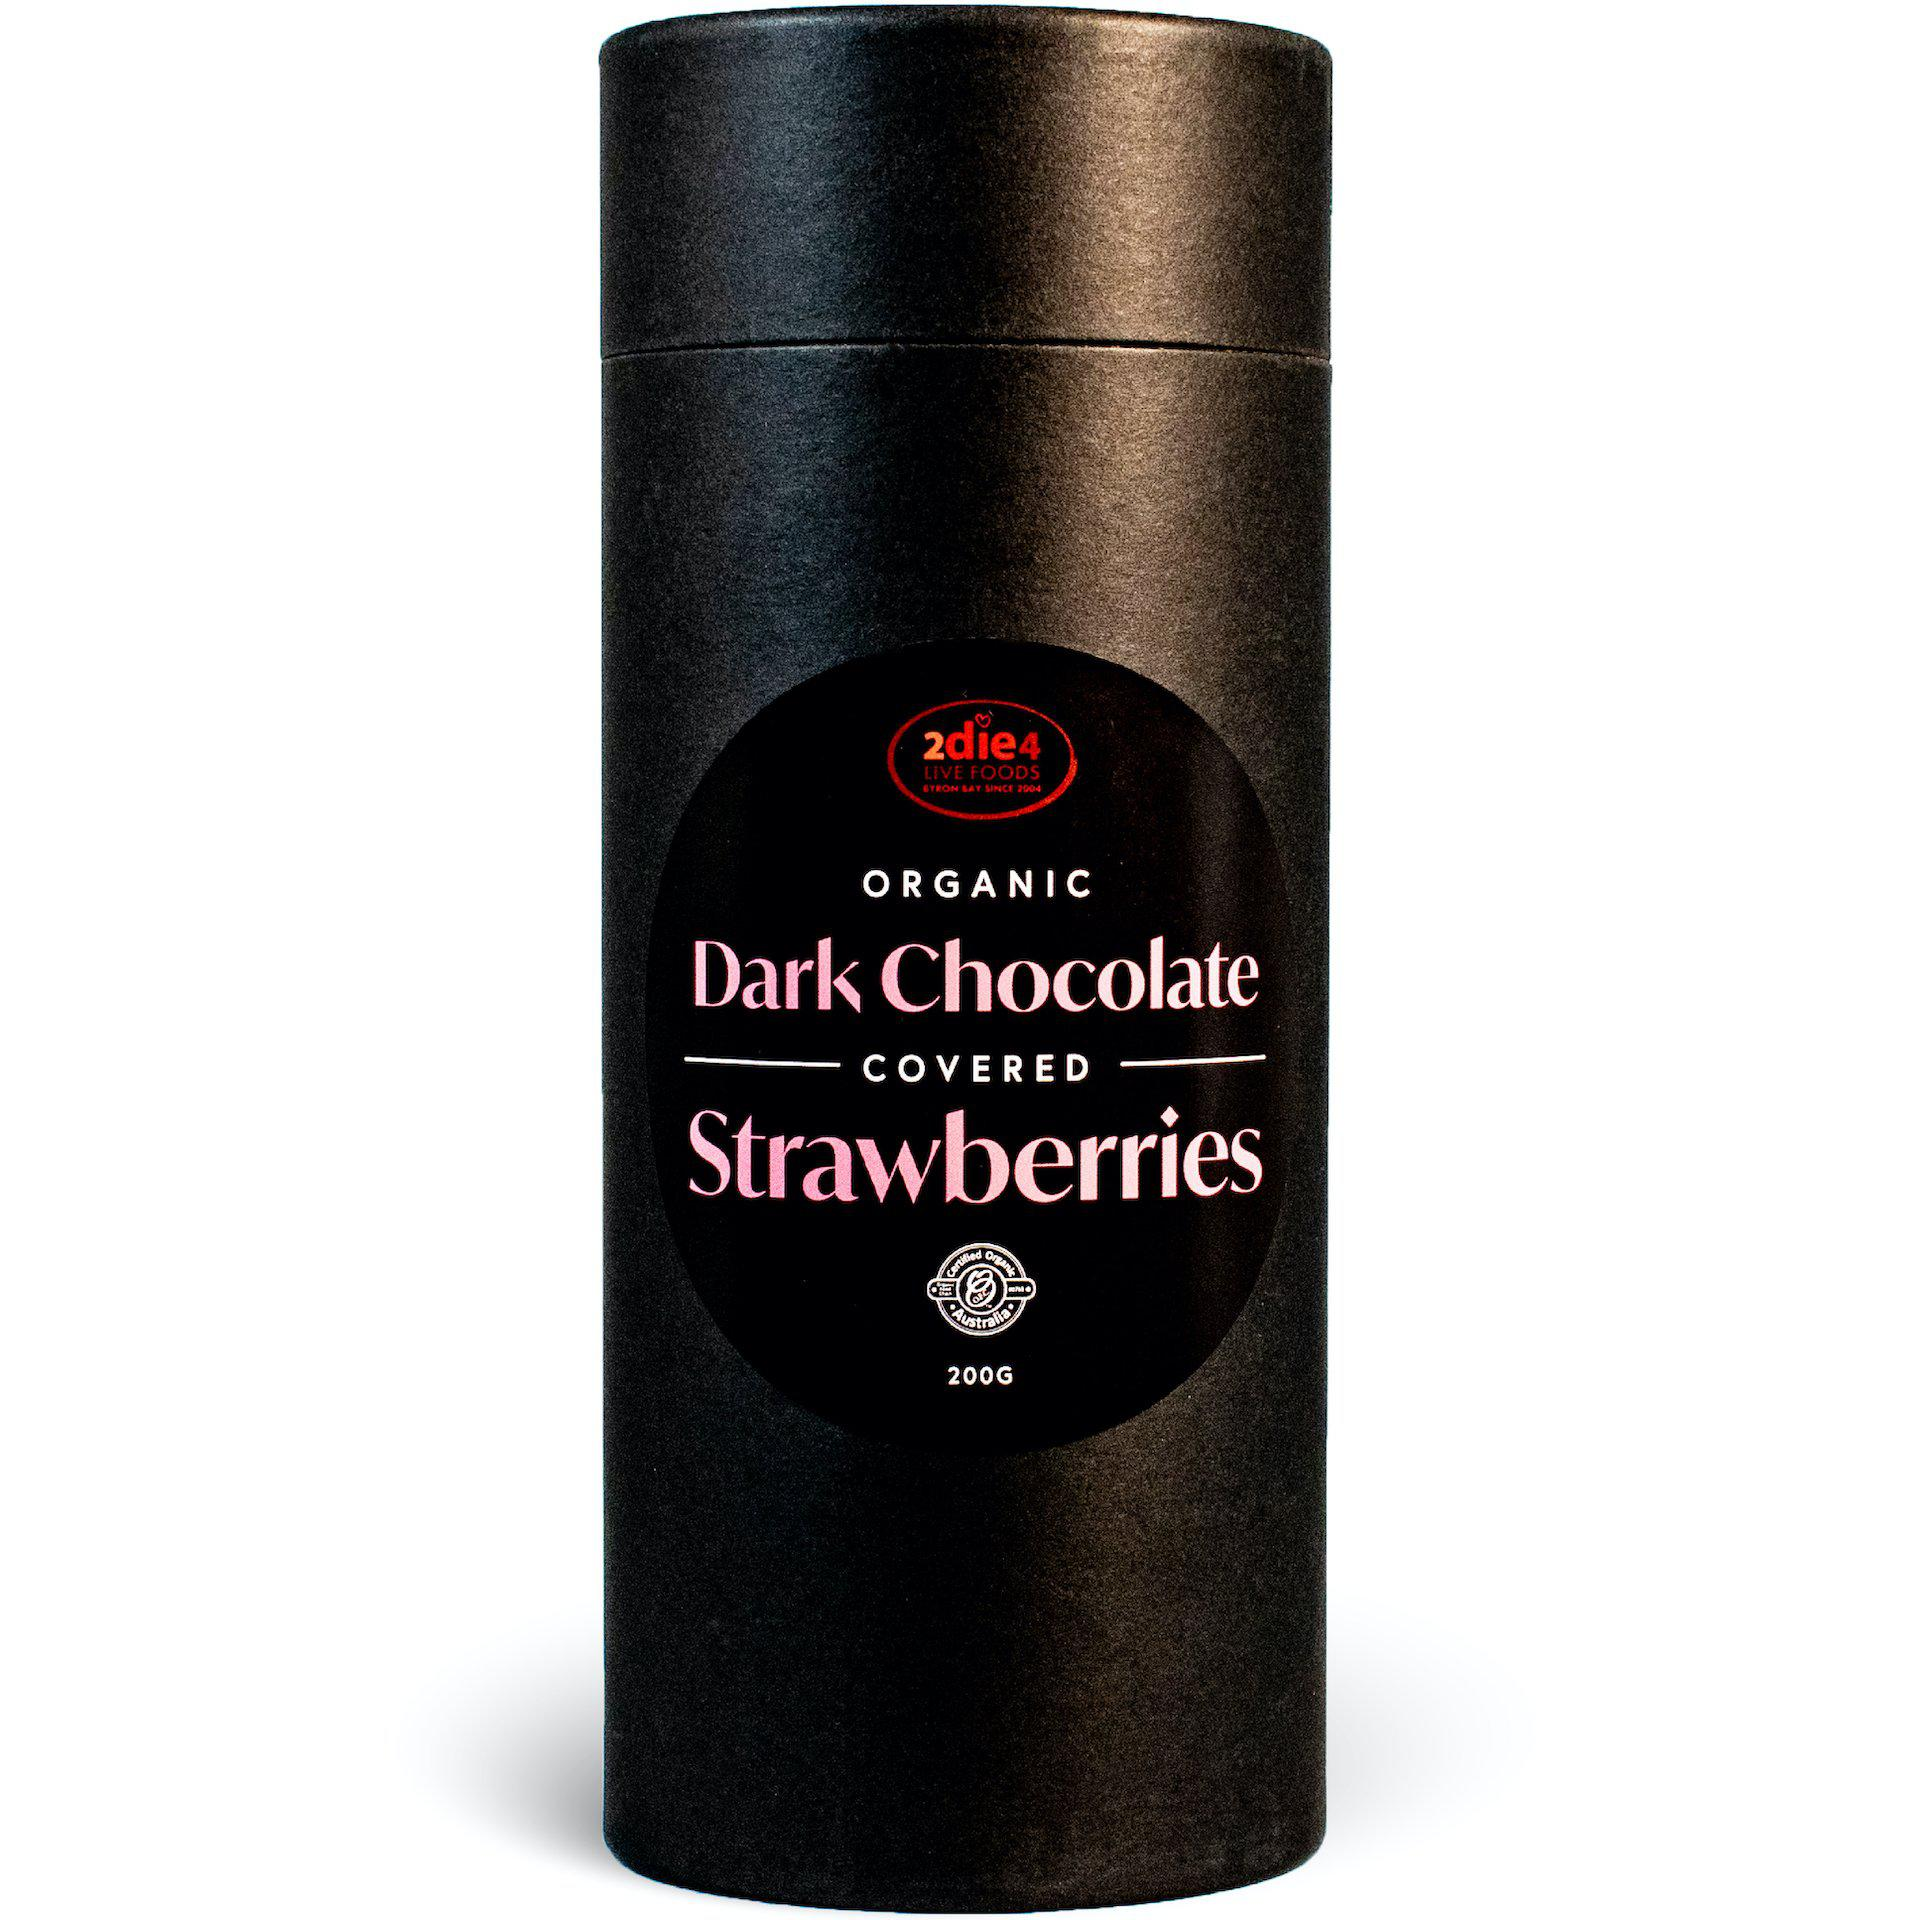 Organic Dark Chocolate Coated Strawberries - 2die4livefoods